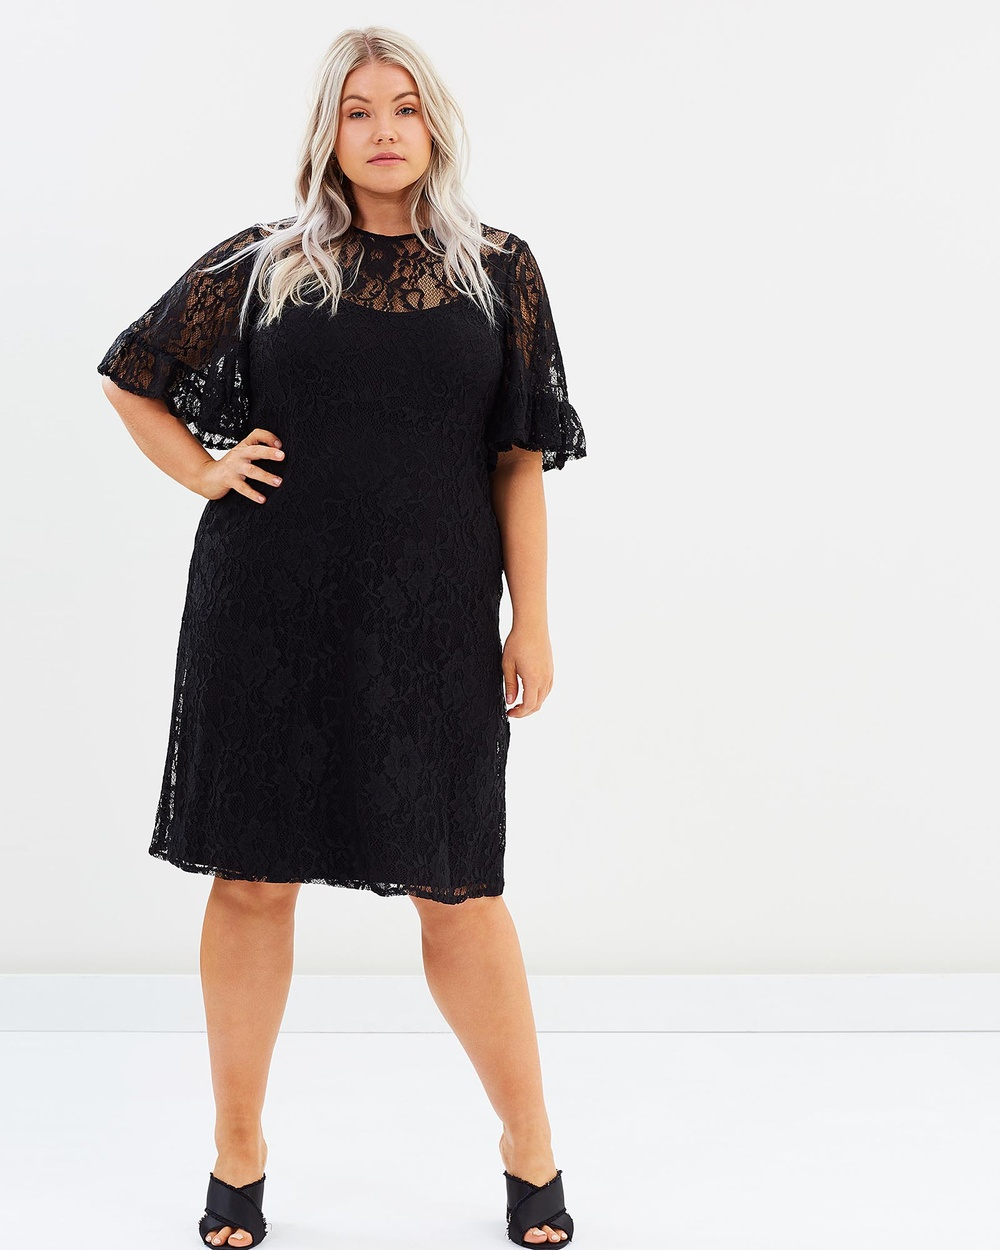 Harlow La Isla Bonita Lace Dress Dresses Black La Isla Bonita Lace Dress